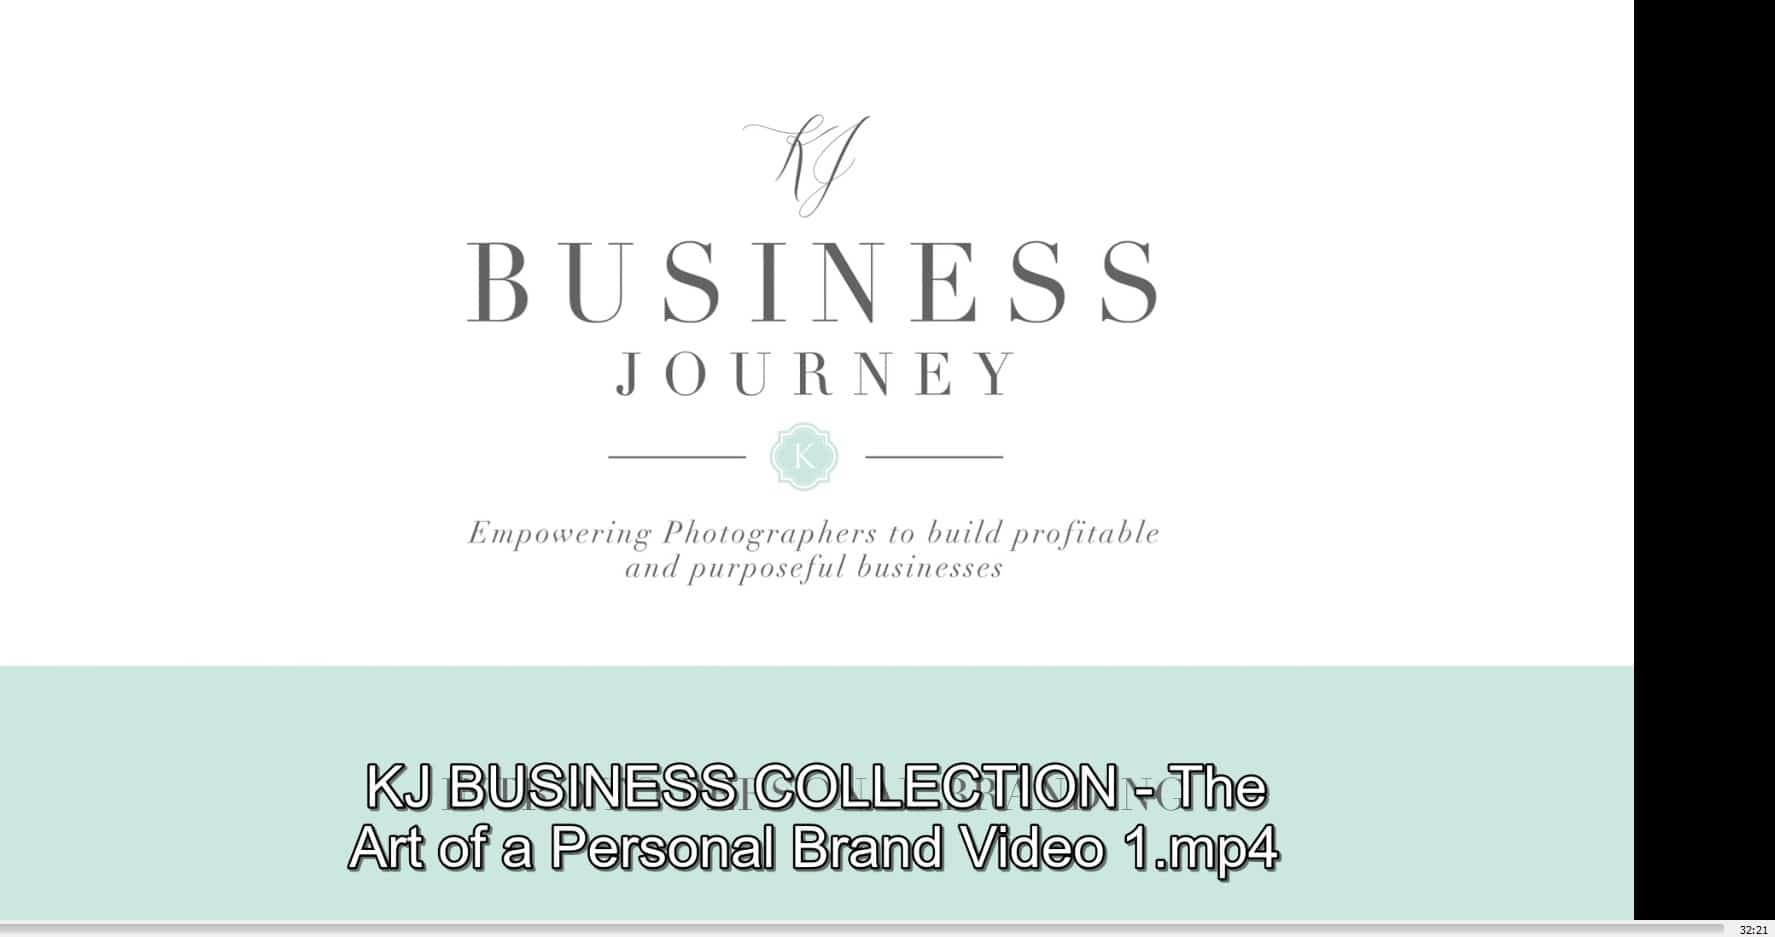 KJ Business Collection by Katelyn James buy